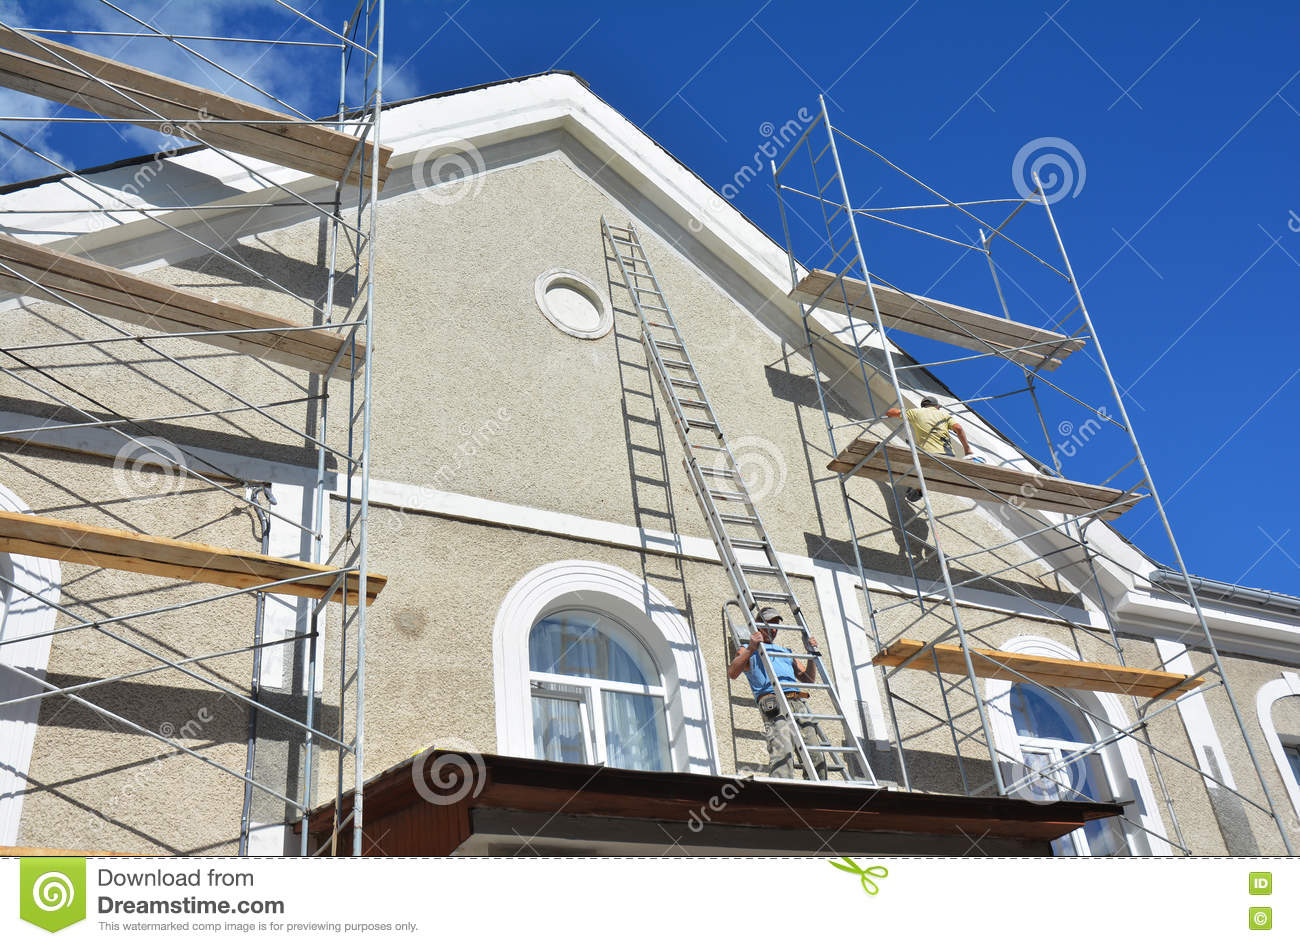 painting and plastering exterior house scaffolding wall facade thermal insulation and stucco